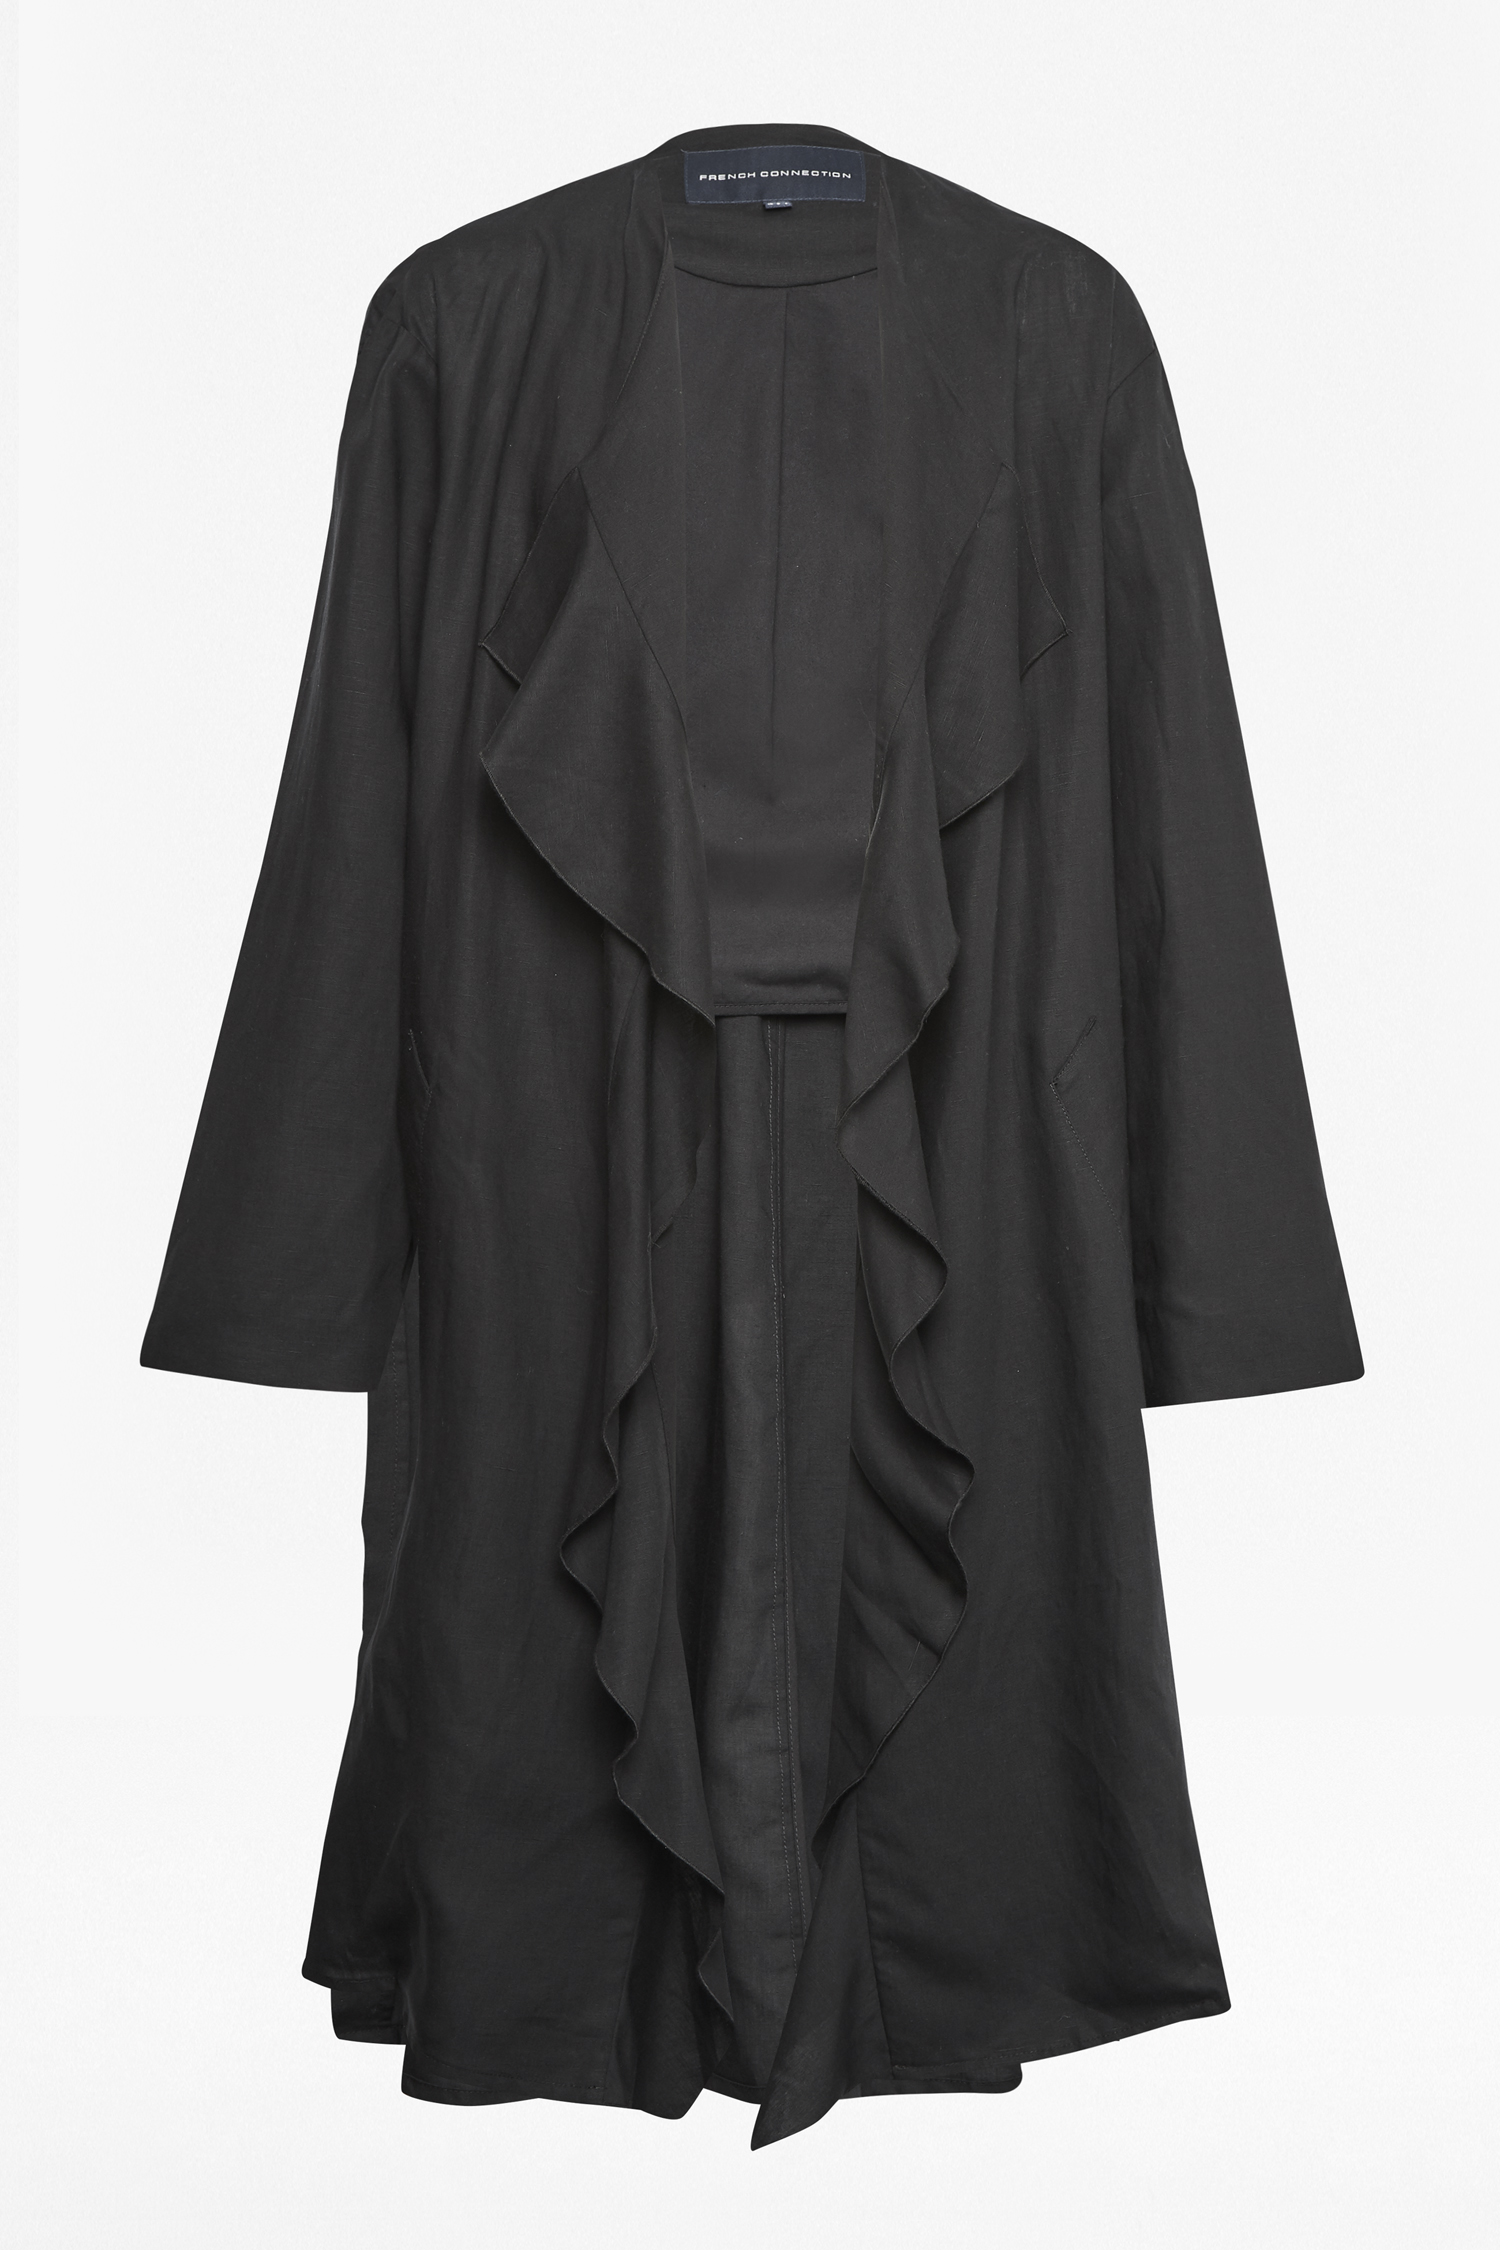 Dae Drape Ruffle Duster Coat Jackets Amp Coats French